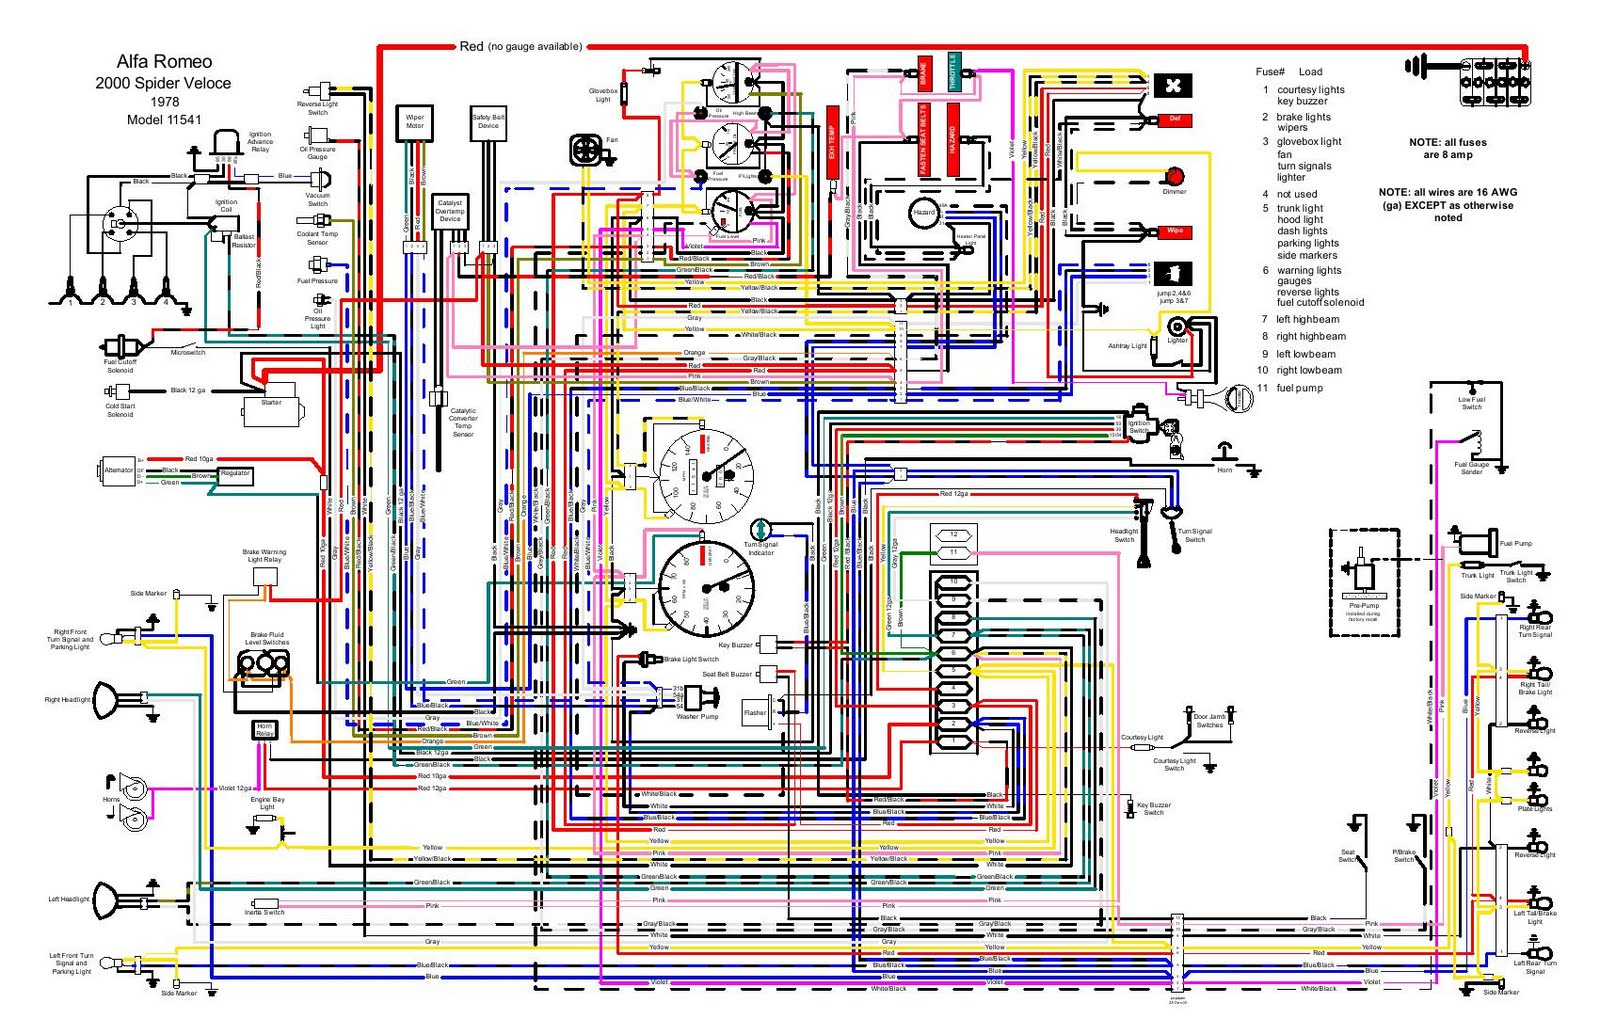 1978_Alfa_Romeo_2000_Spider_Wiring alfa romeo spider wiring diagram volvo amazon wiring diagram volvo amazon wiring diagram at soozxer.org